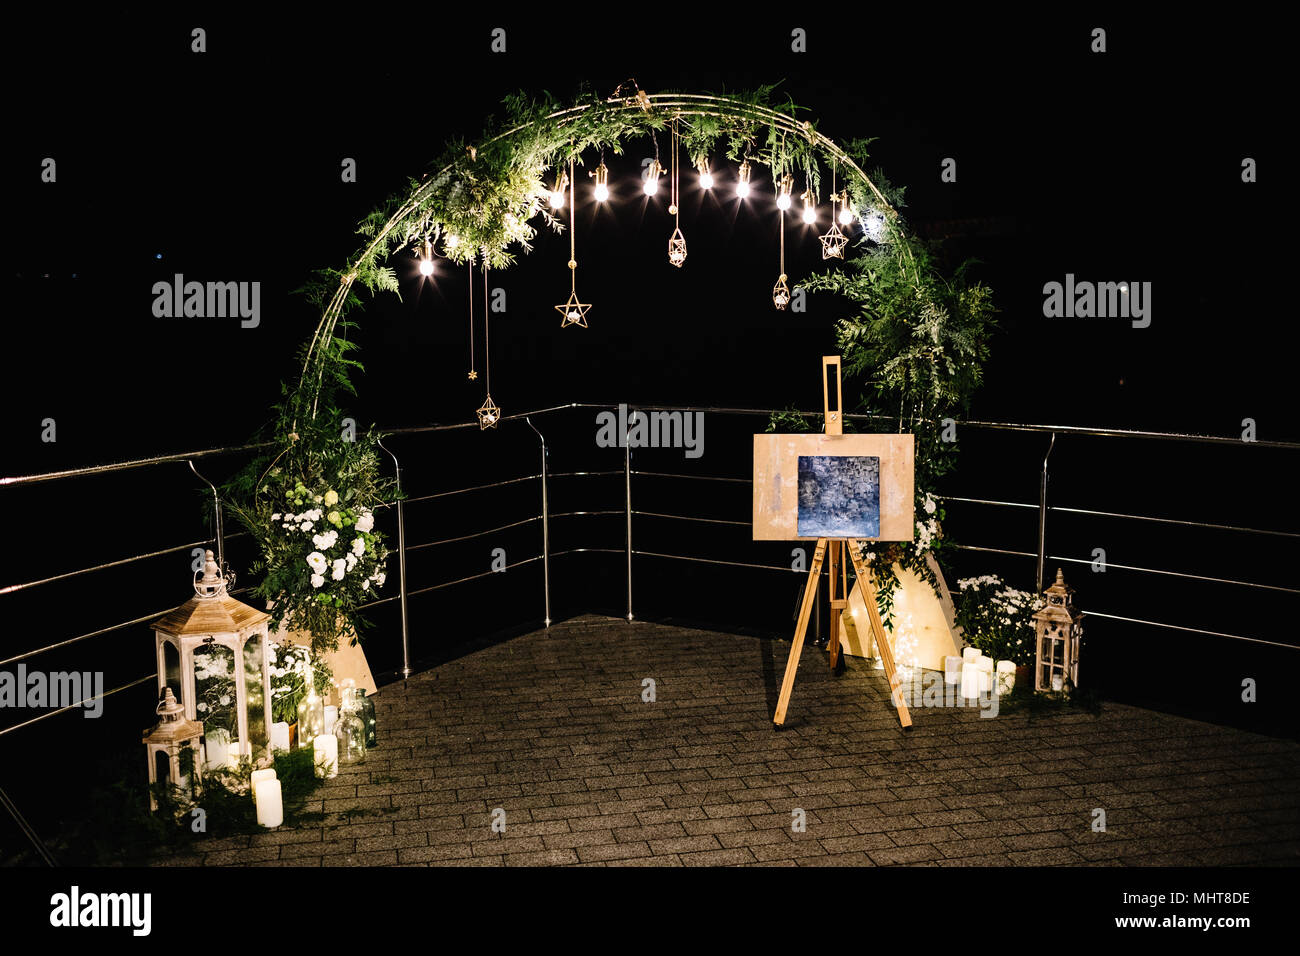 Light Bulb Decor In Outdoor Party Stock Photo Alamy